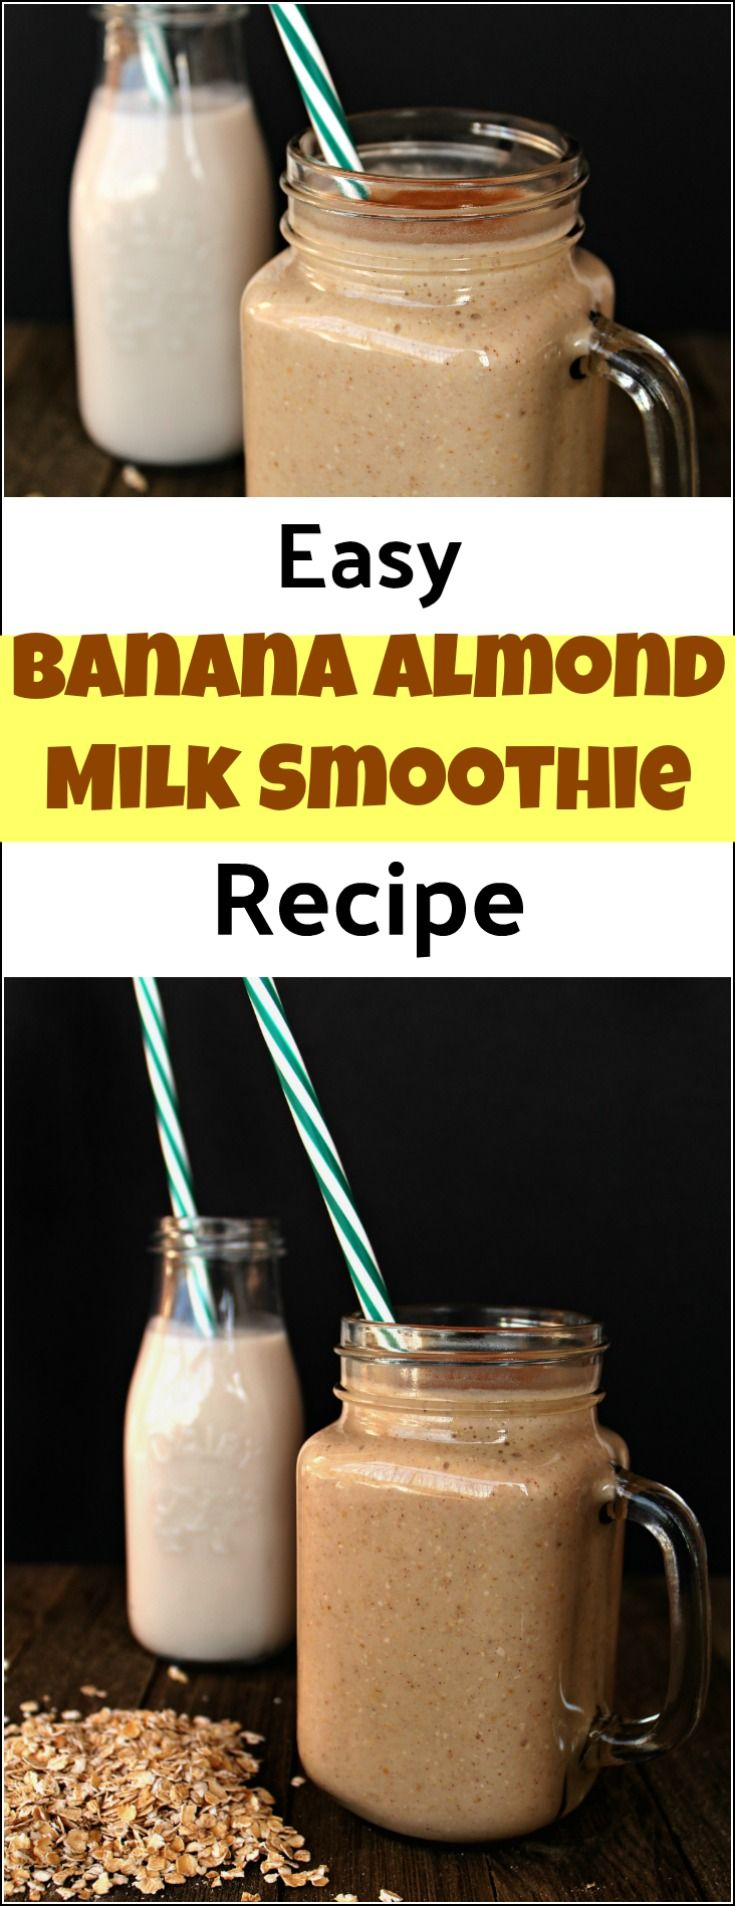 This tasty banana almond milk smoothie is both delicious and healthy. As an added bonus, the oats make it filling enough to be an on the go meal. A delicious breakfast smoothie or a delicious snack. almond milk banana smoothie, banana smoothie with almond milk, healthy smoothies with almond milk, smoothie with almond milk, banana smoothie via @justthewoods